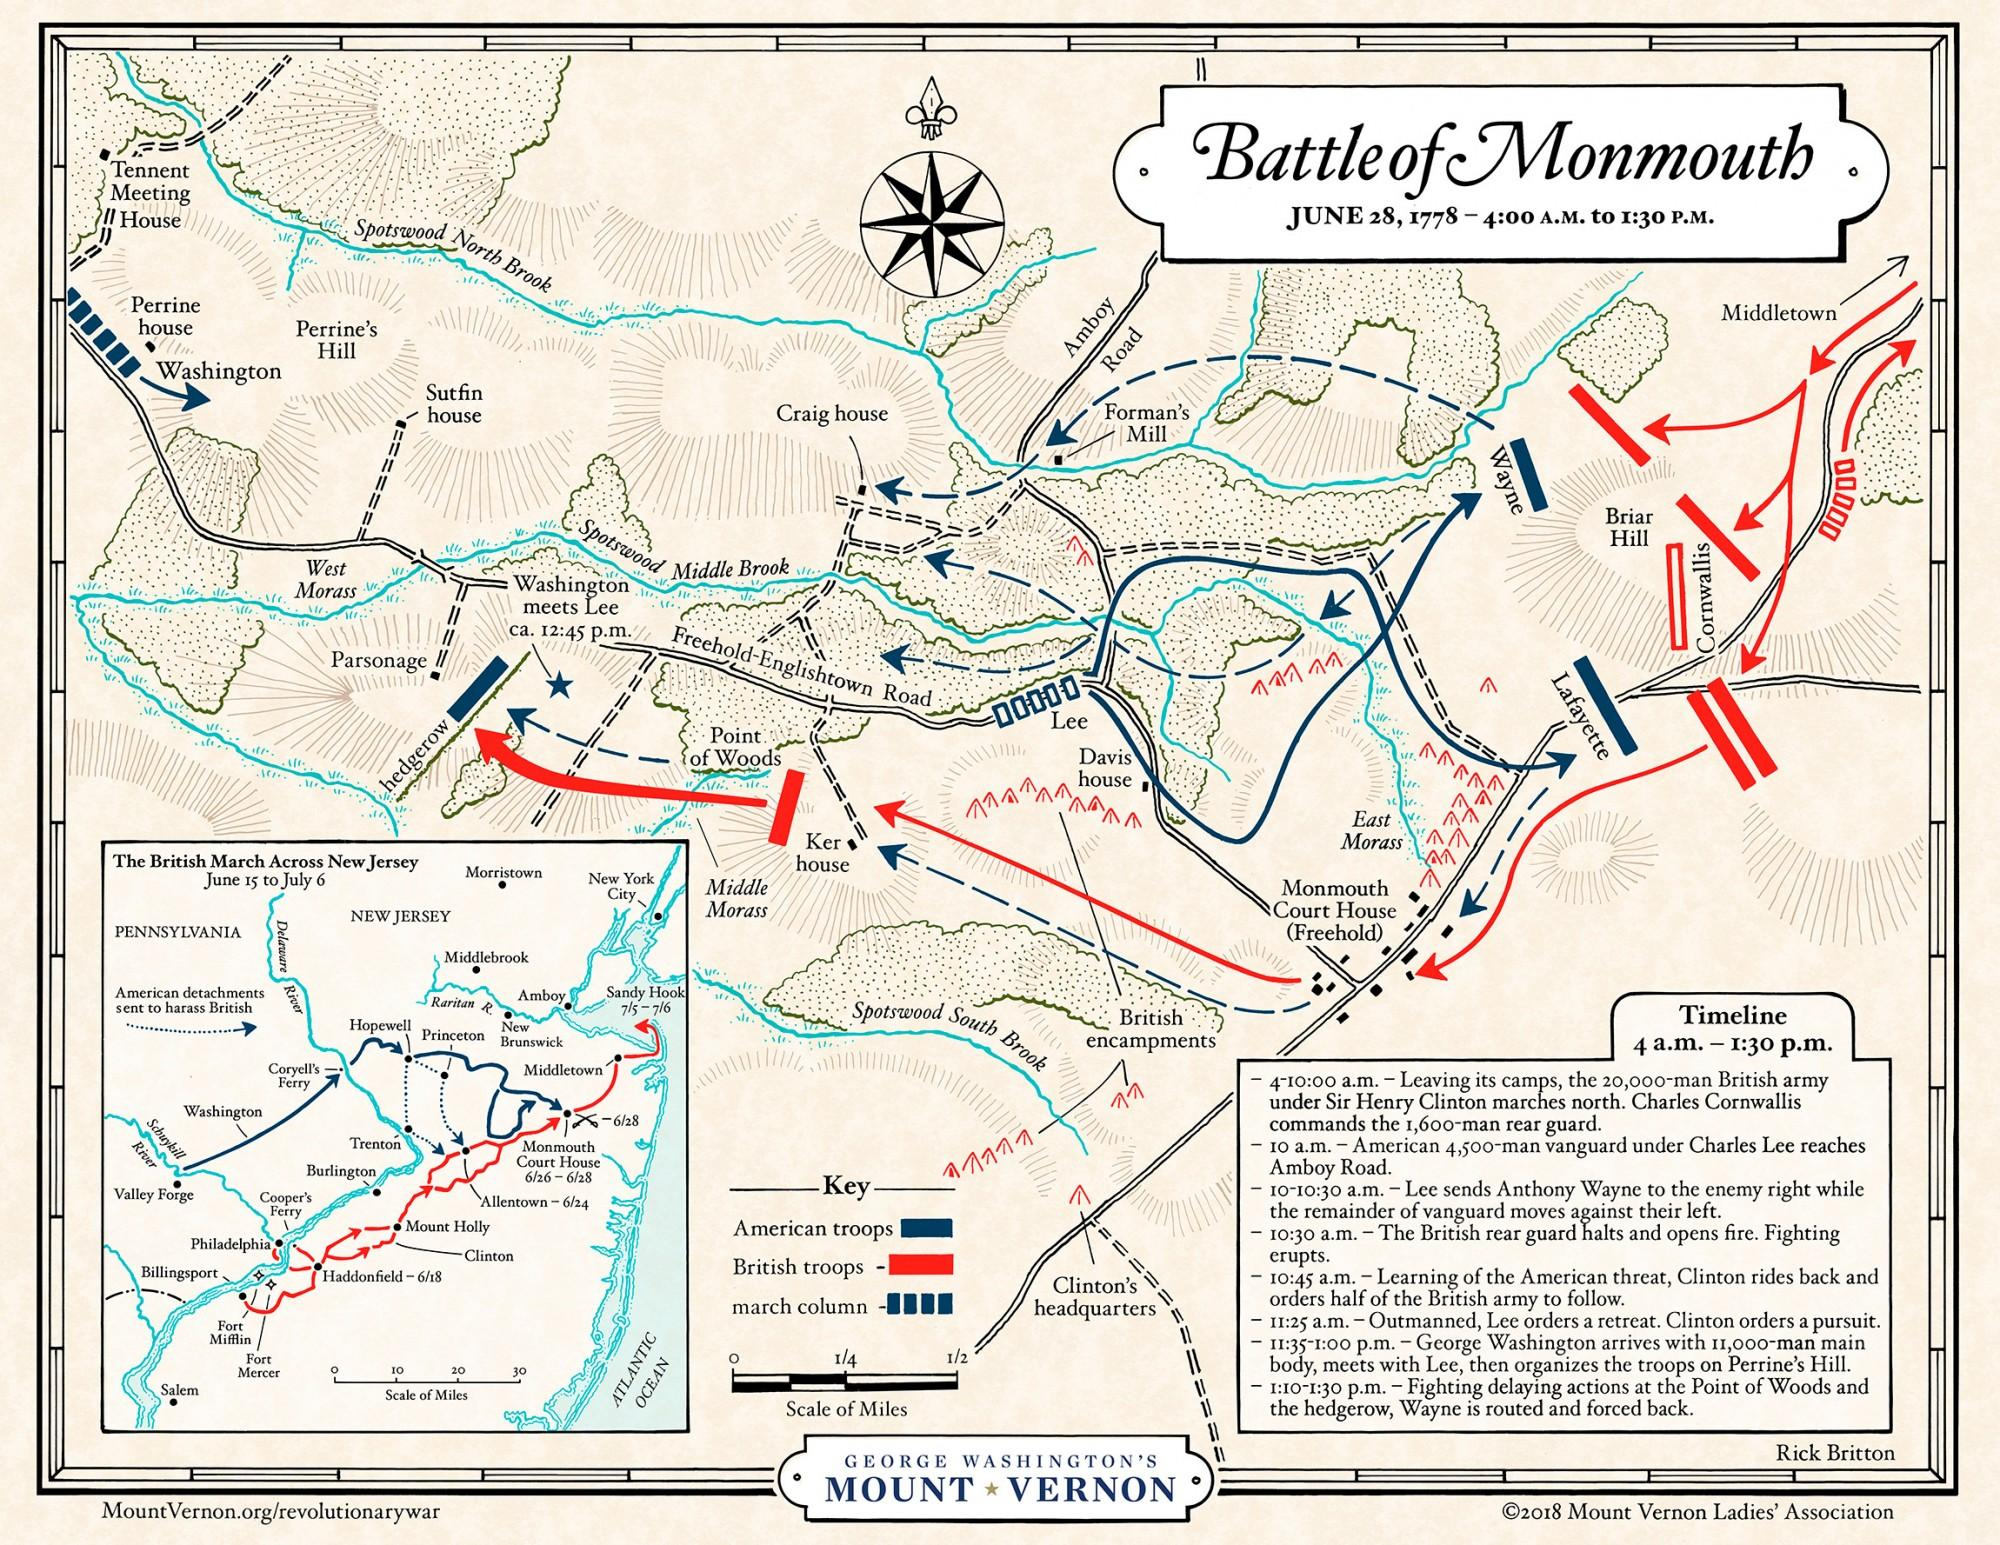 Map: Battle of Monmouth - Morning